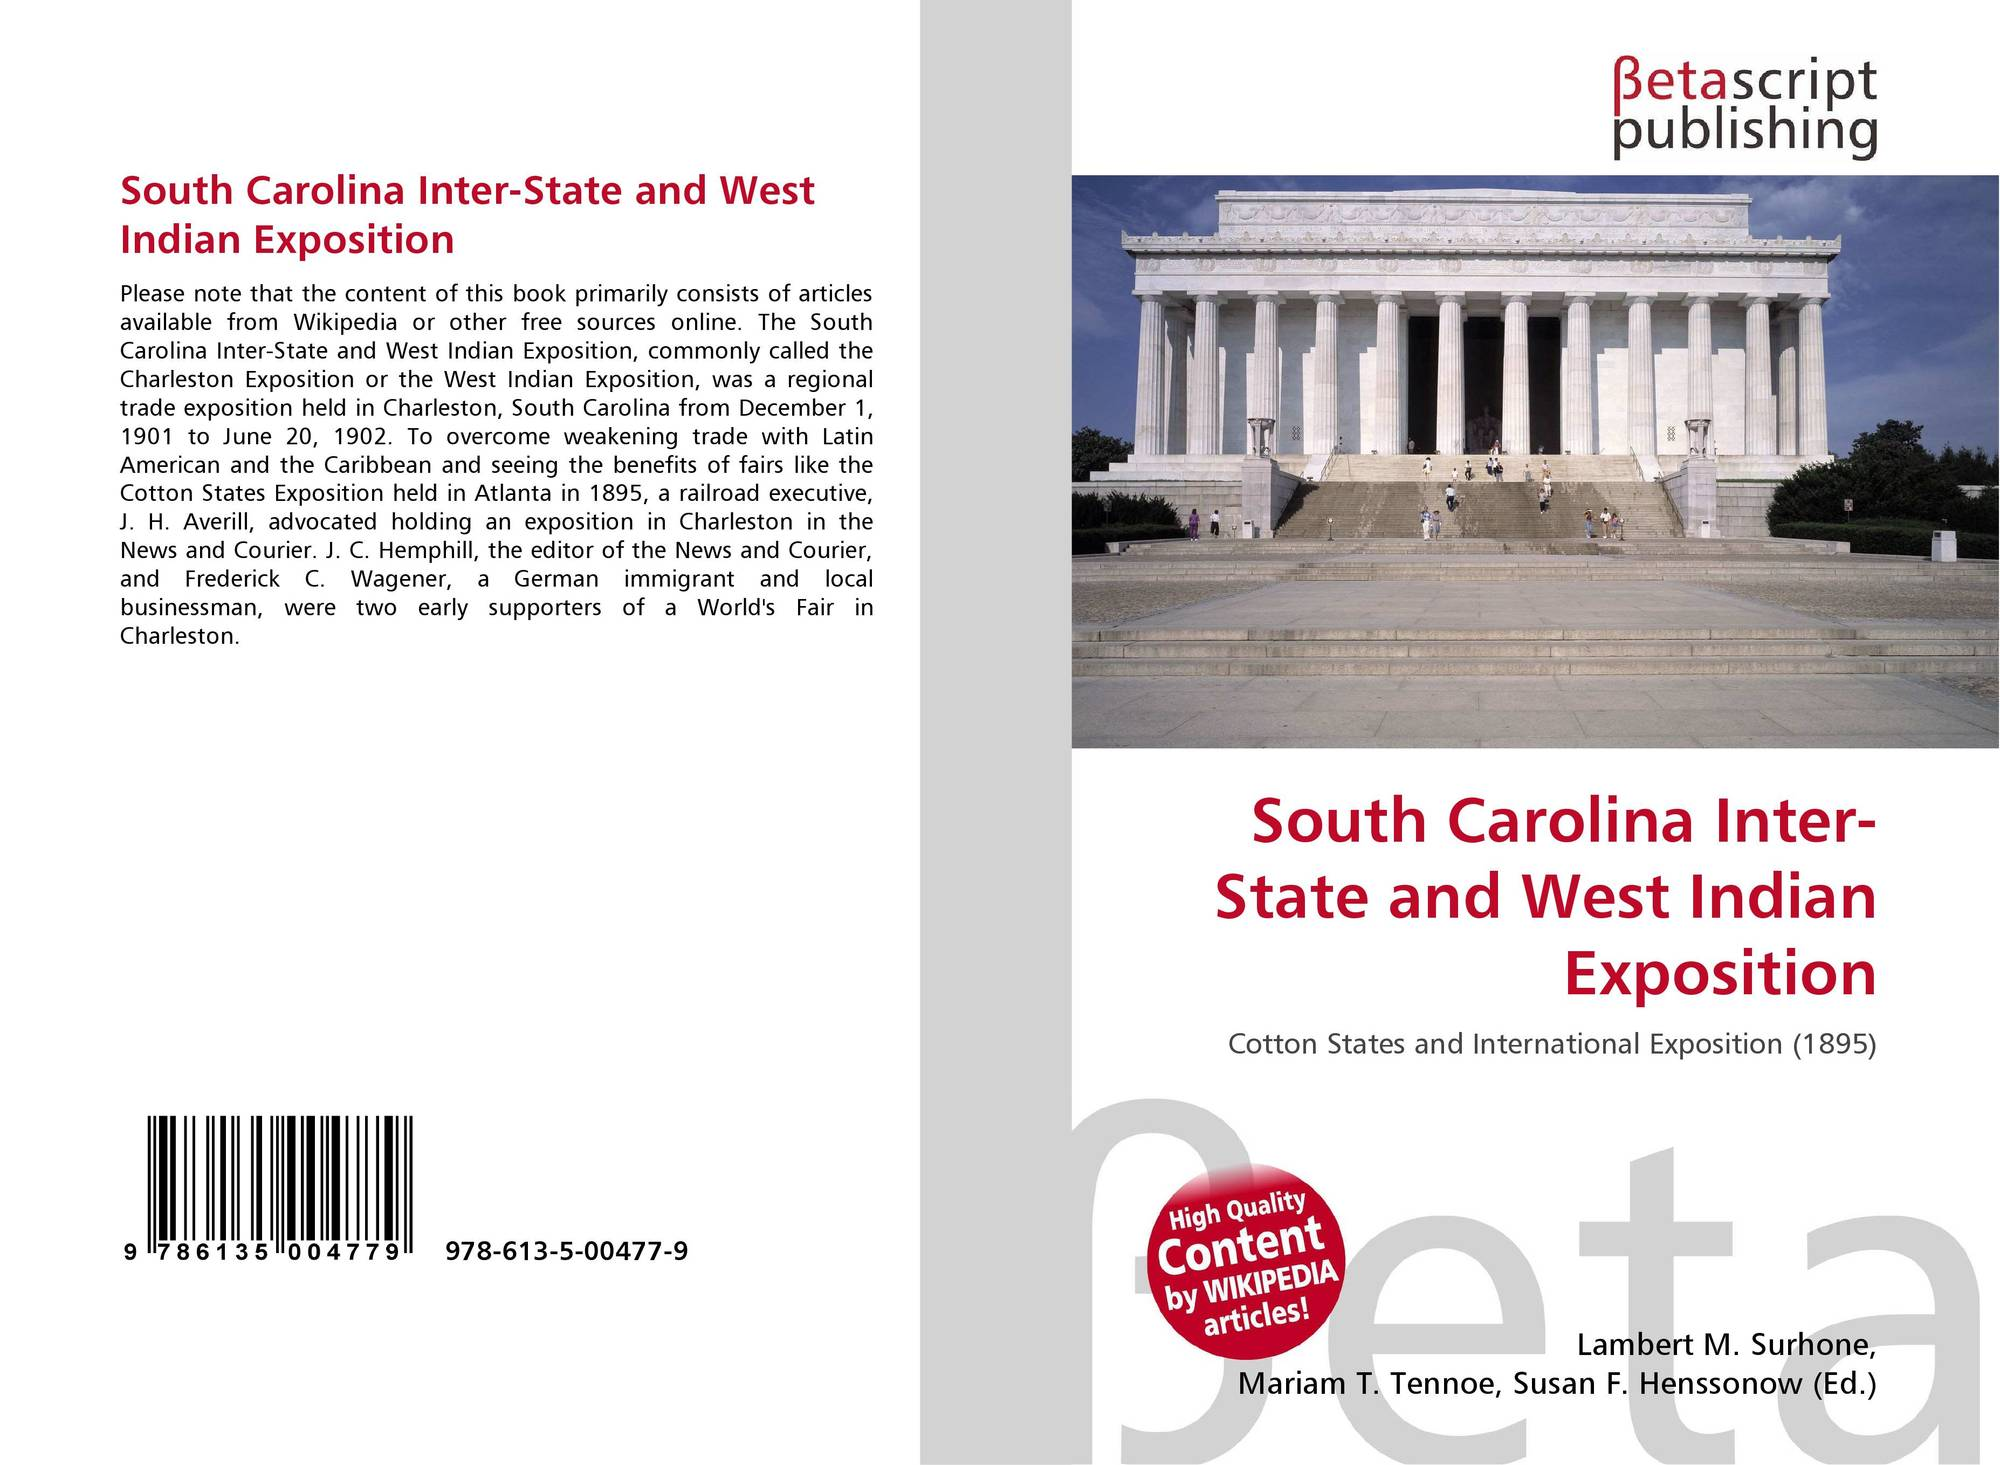 South Carolina Inter-State and West Indian Exposition, 978